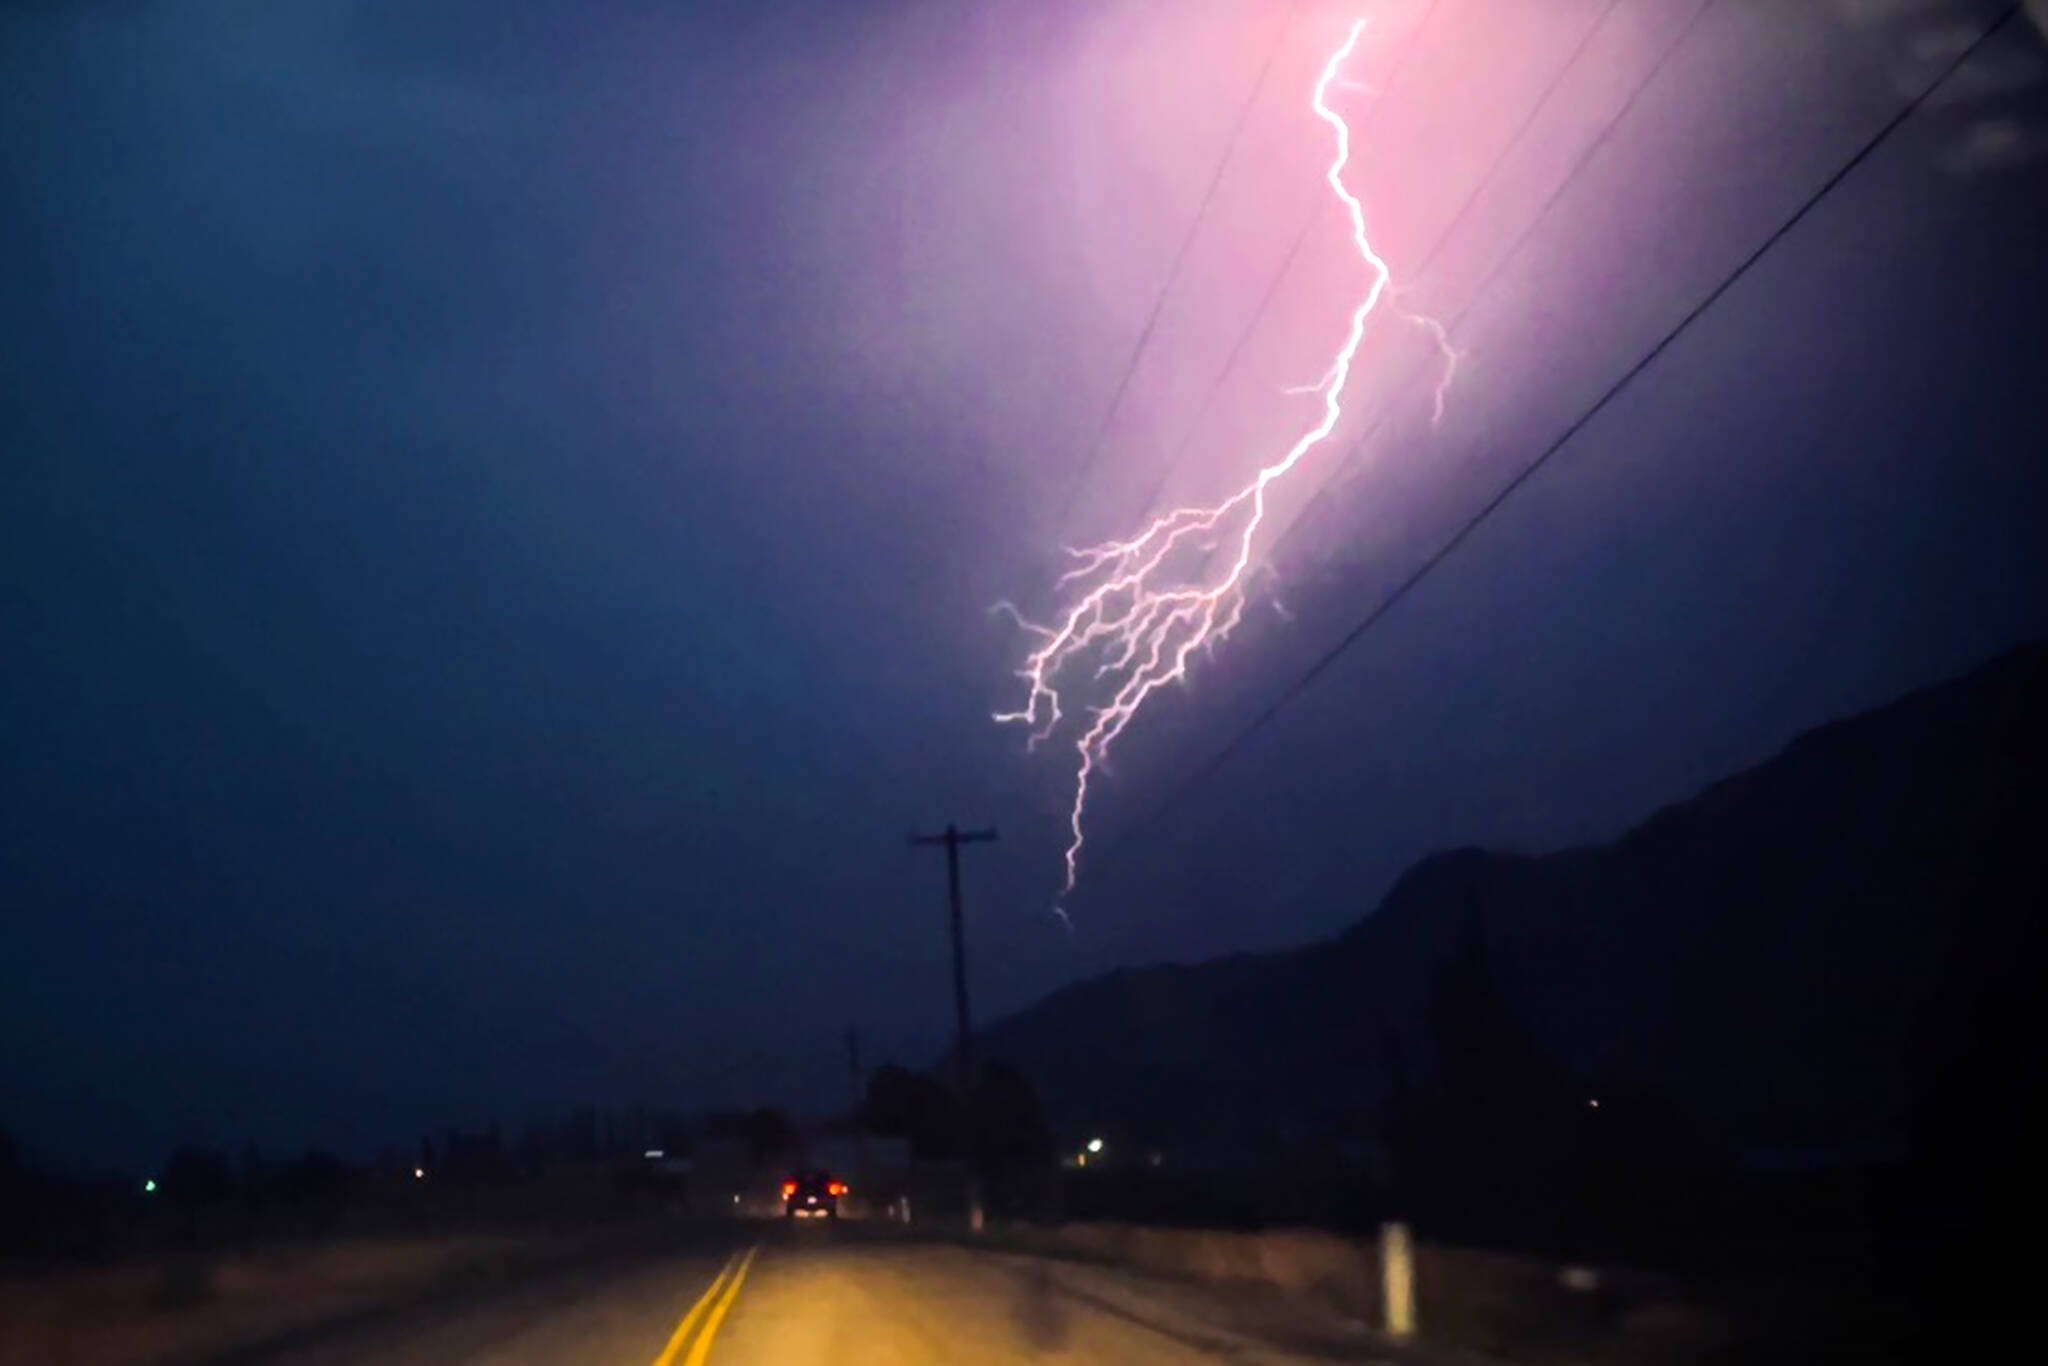 A thunderstorm is seen Aug. 3, 2021, in Okanogan County, Washington. (Kathryn Knowlton/submitted photo)